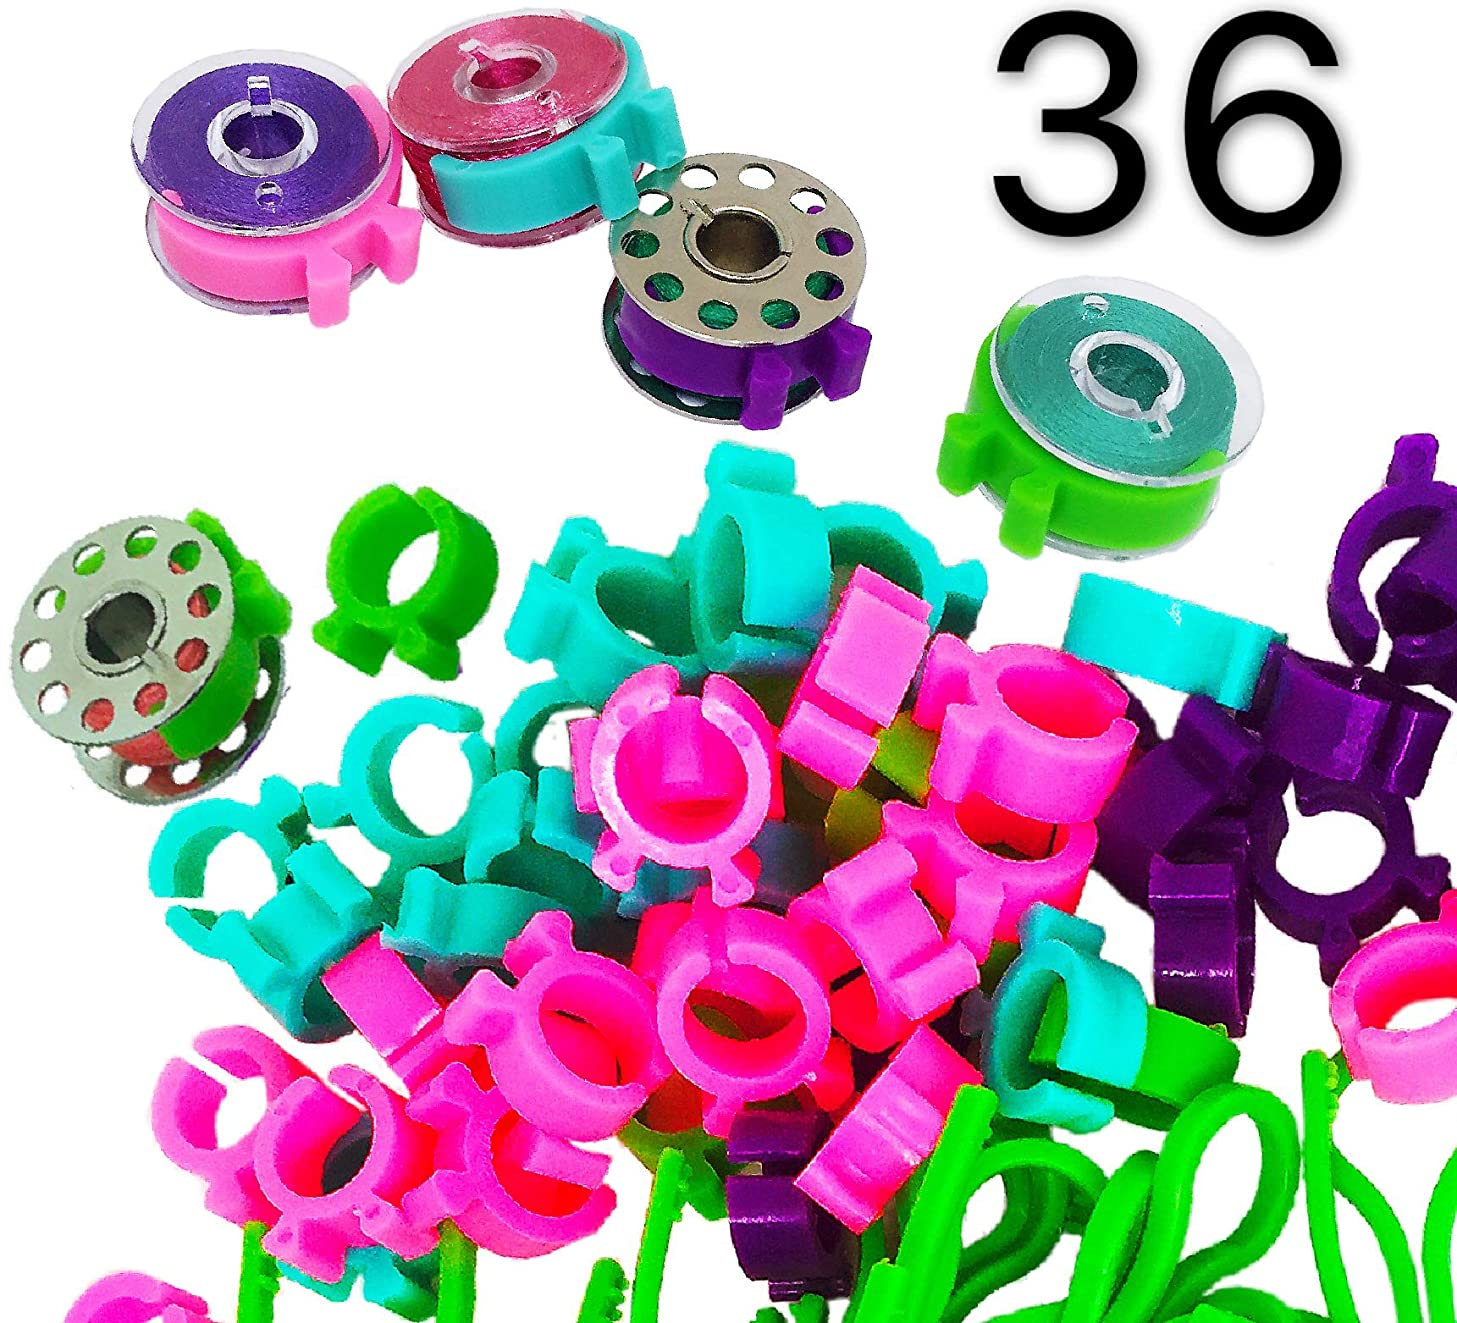 PeavyTailor Bobbin Buddies 36 Pcs Bobbin Holders Clamps Clips for Embroidery Quilting Sewing Machine #12